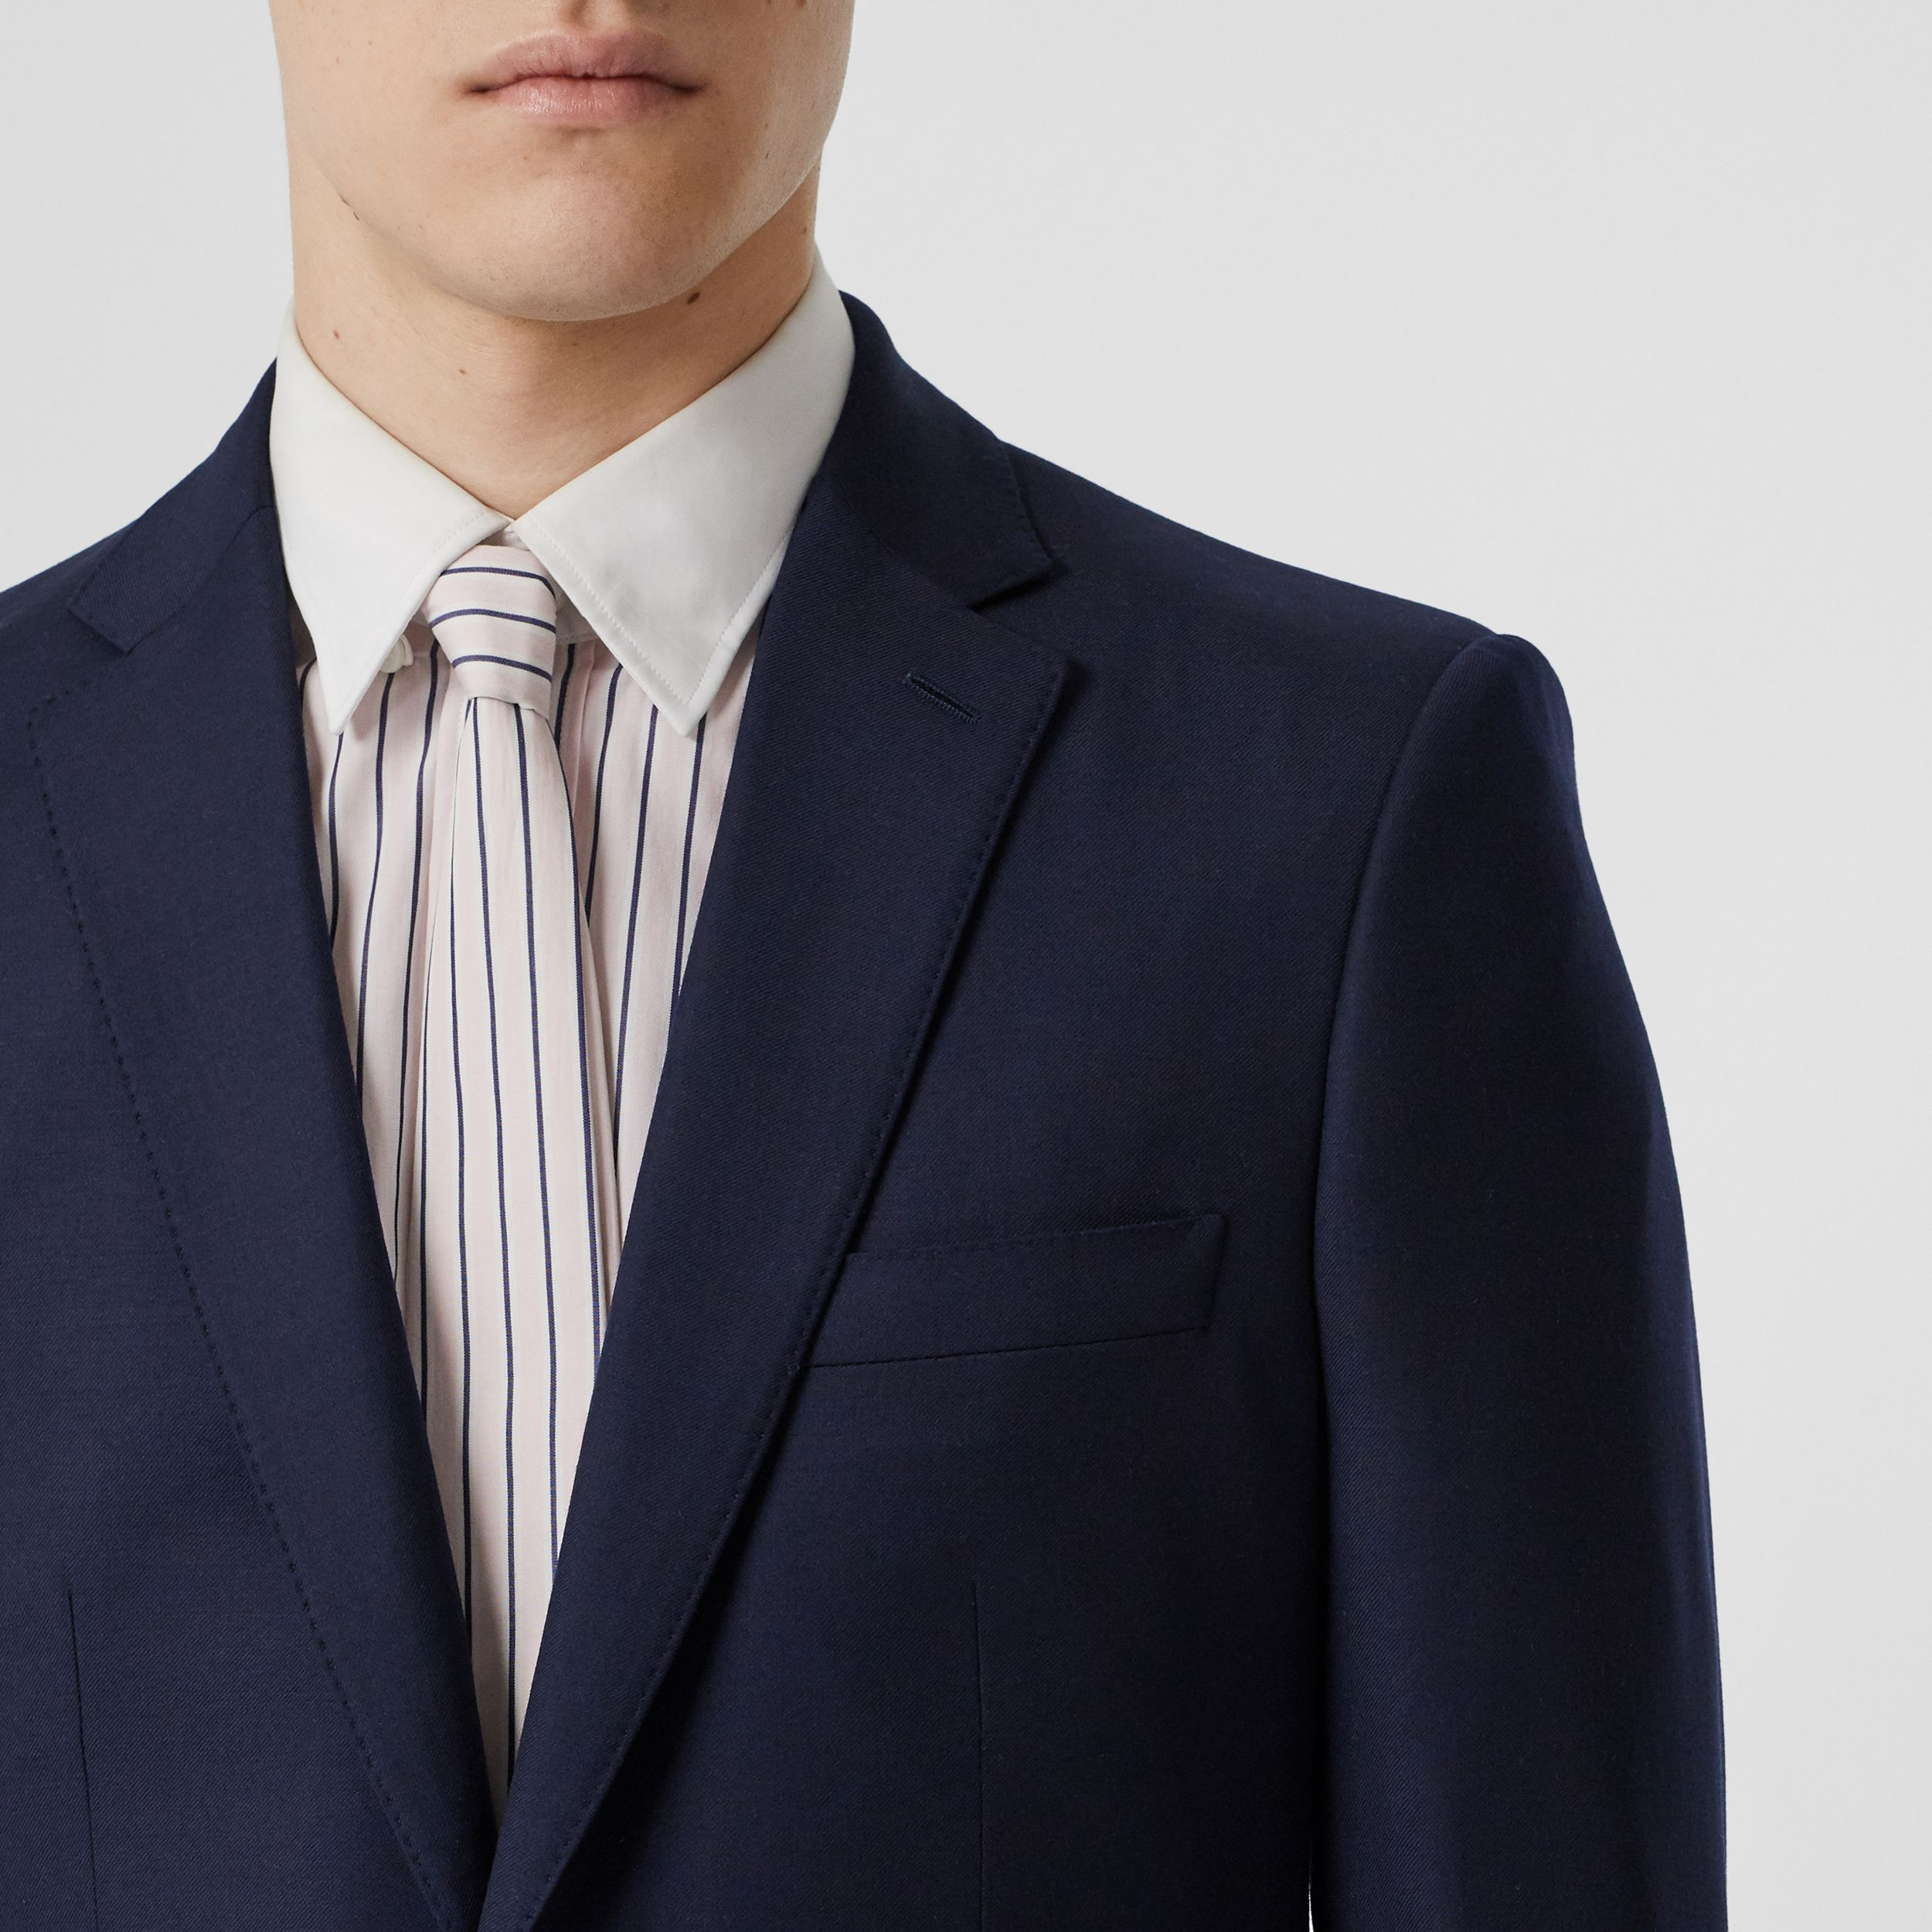 Classic Fit Wool Suit in Navy - Men | Burberry United Kingdom - 2